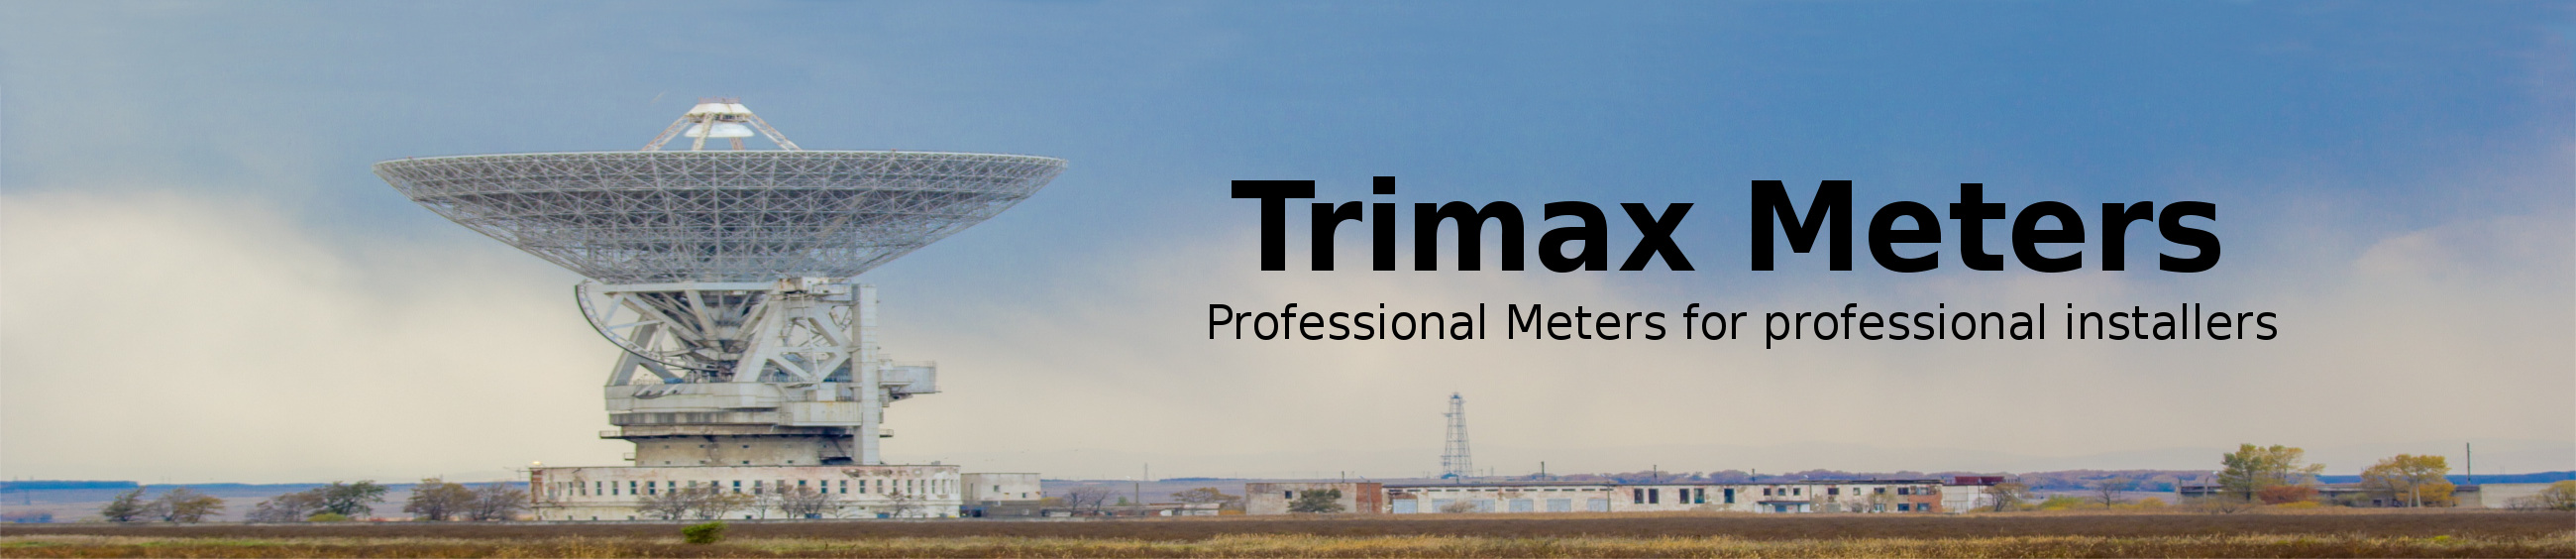 Trimax Meters